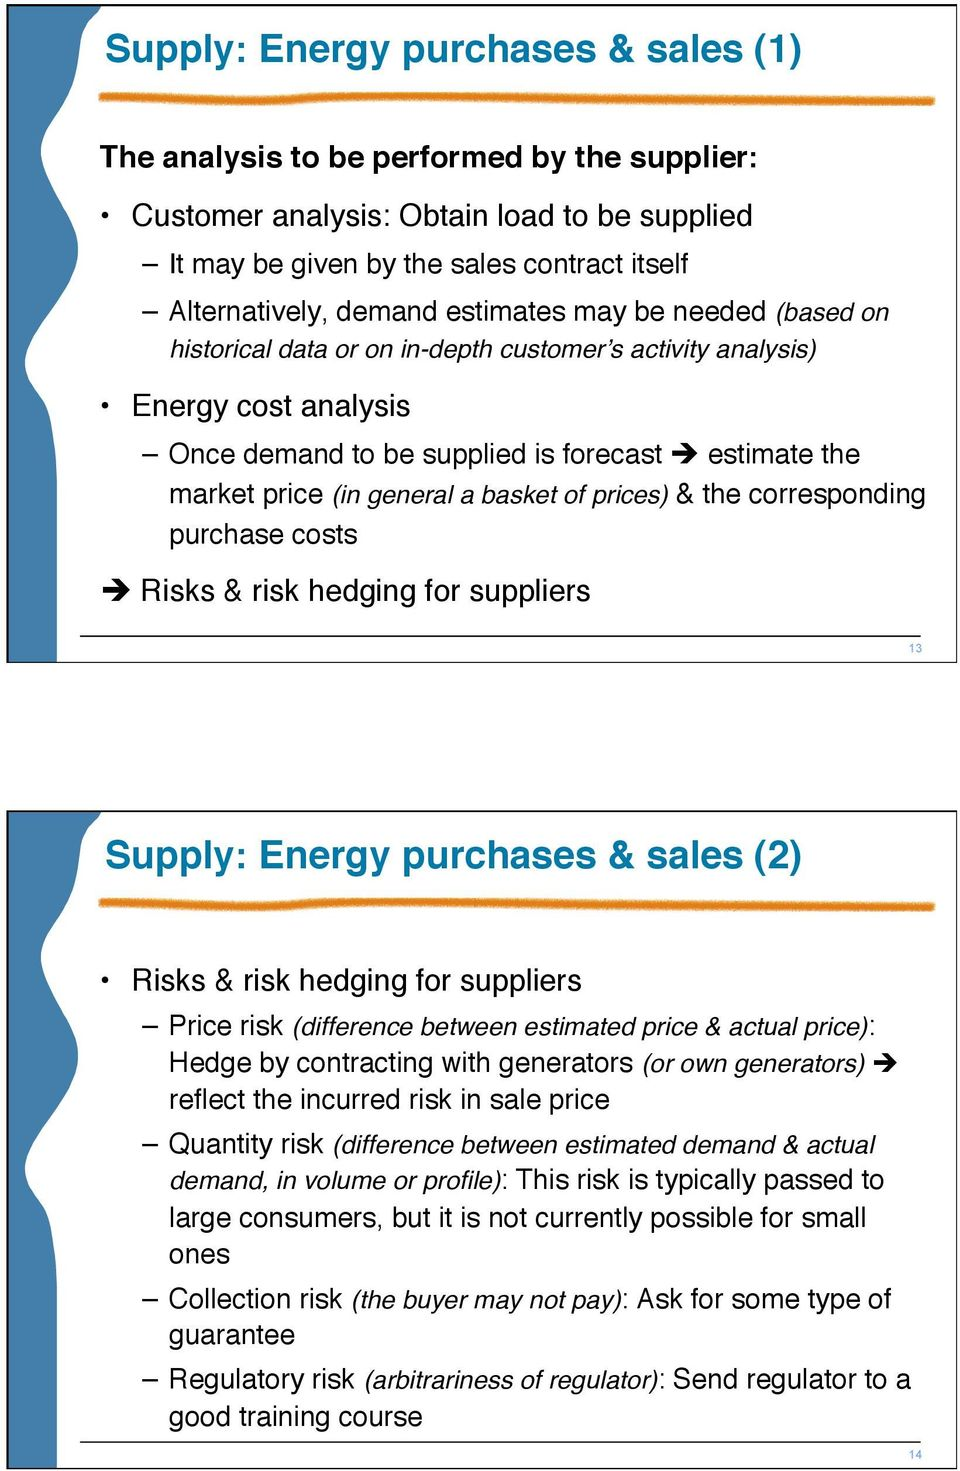 basket of prices) & the corresponding purchase costs Risks & risk hedging for suppliers 13 Supply: Energy purchases & sales (2) Risks & risk hedging for suppliers Price risk (difference between